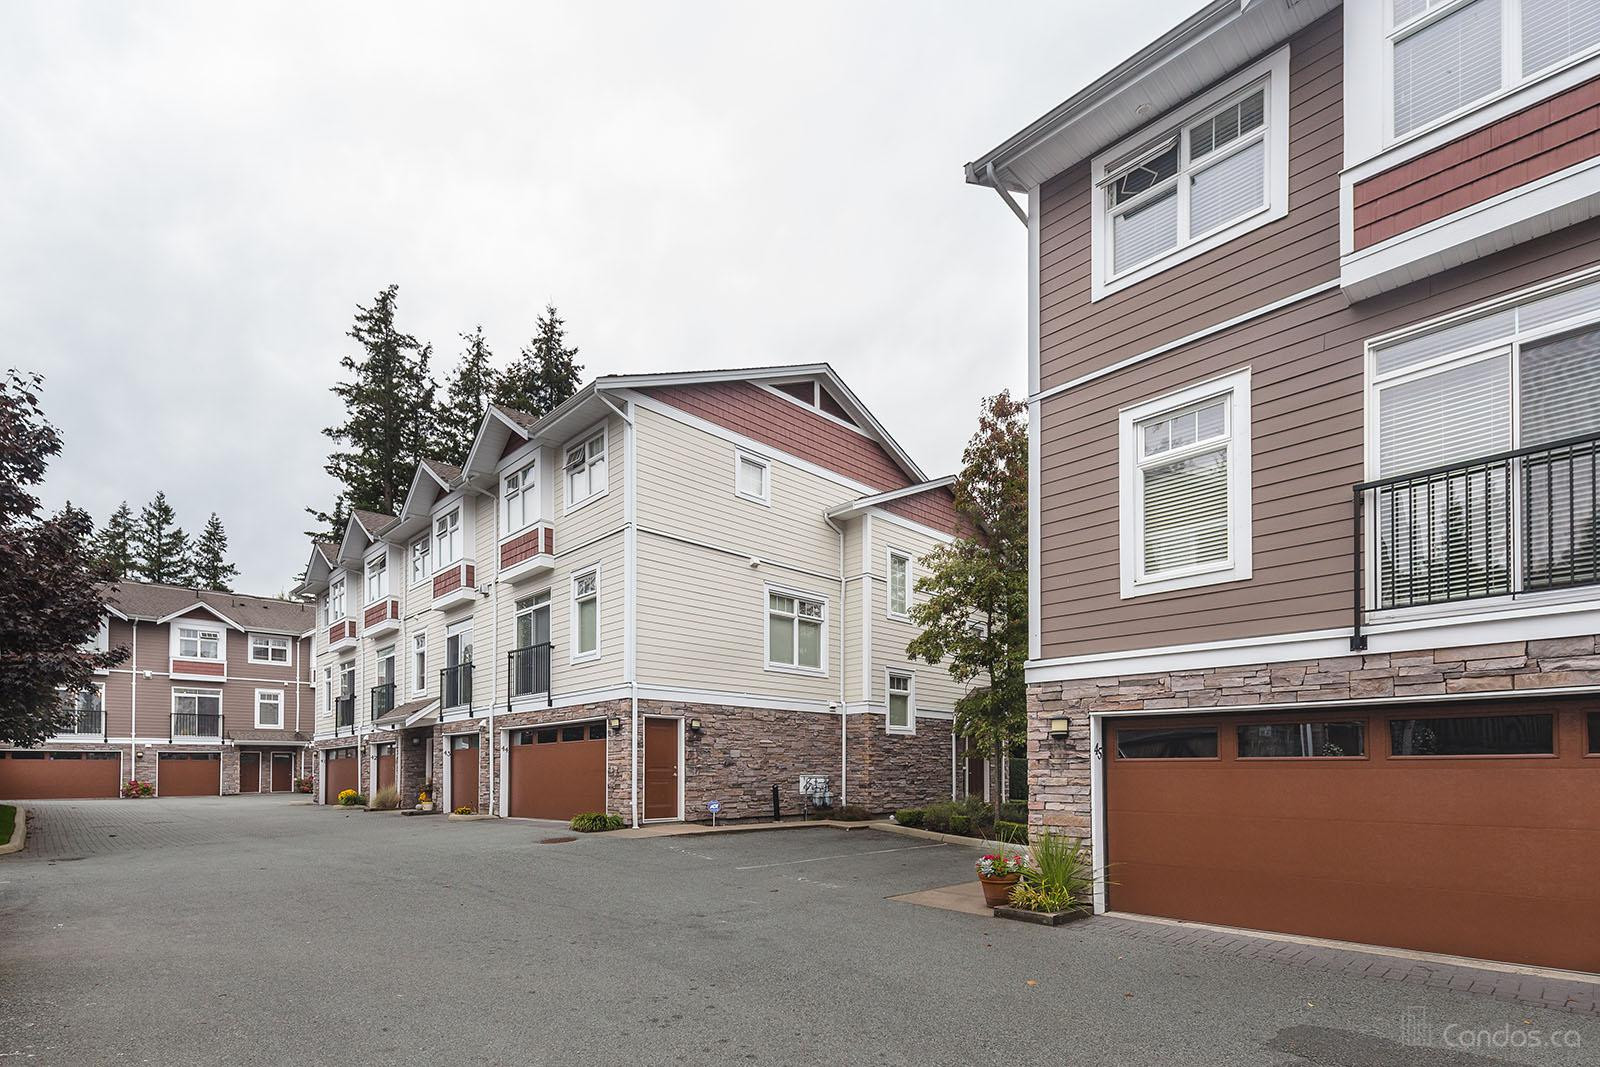 Allure at 2689 Parkway Dr, Surrey 1